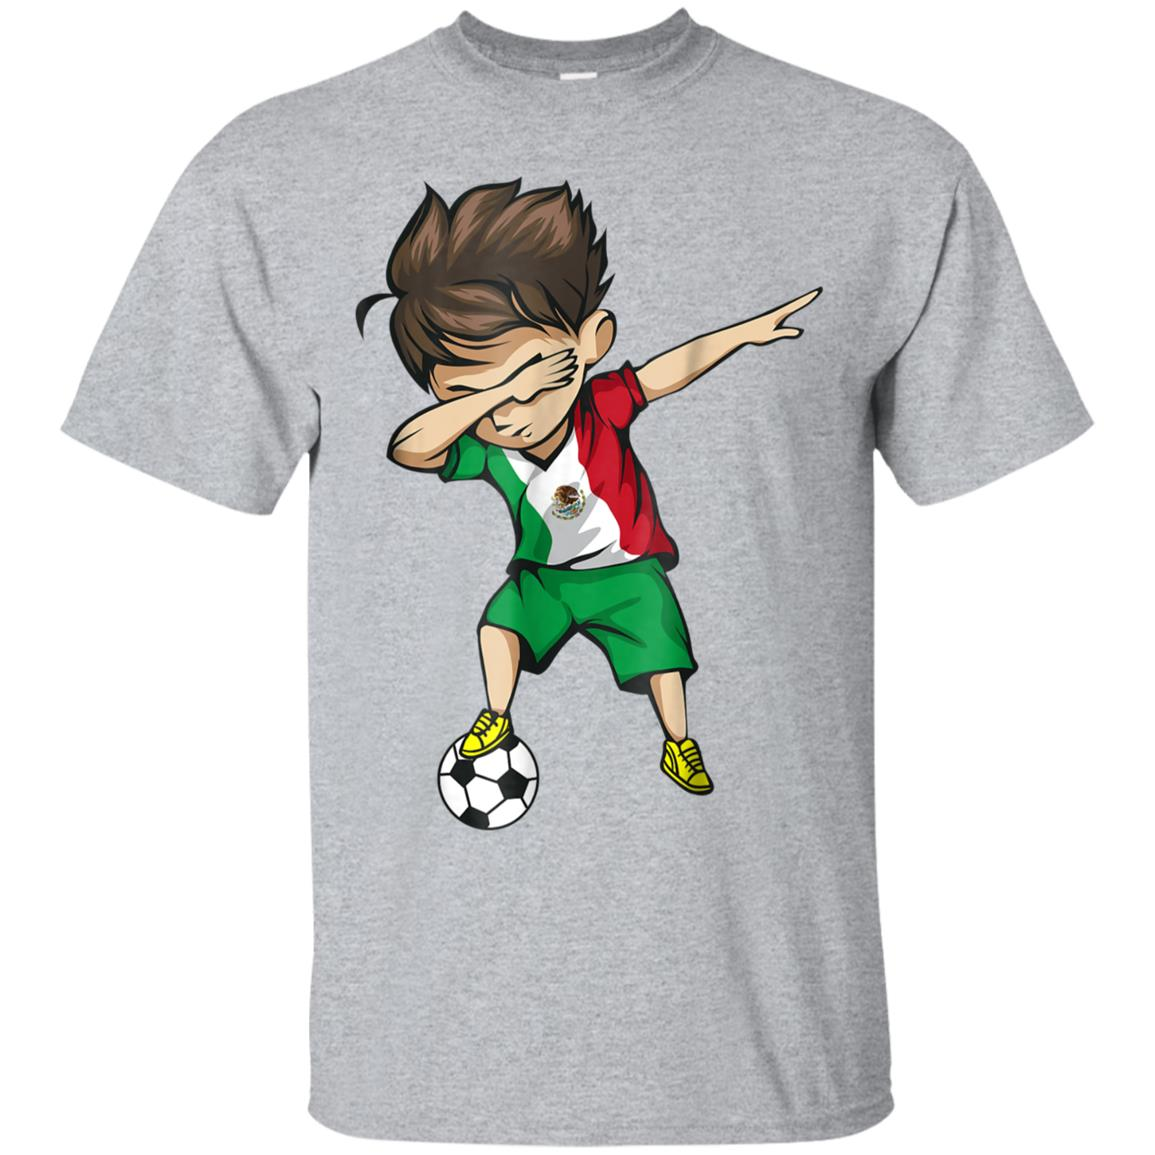 f9c6498c2a8 Awesome dabbing soccer boy mexico jersey shirt mexican football ...